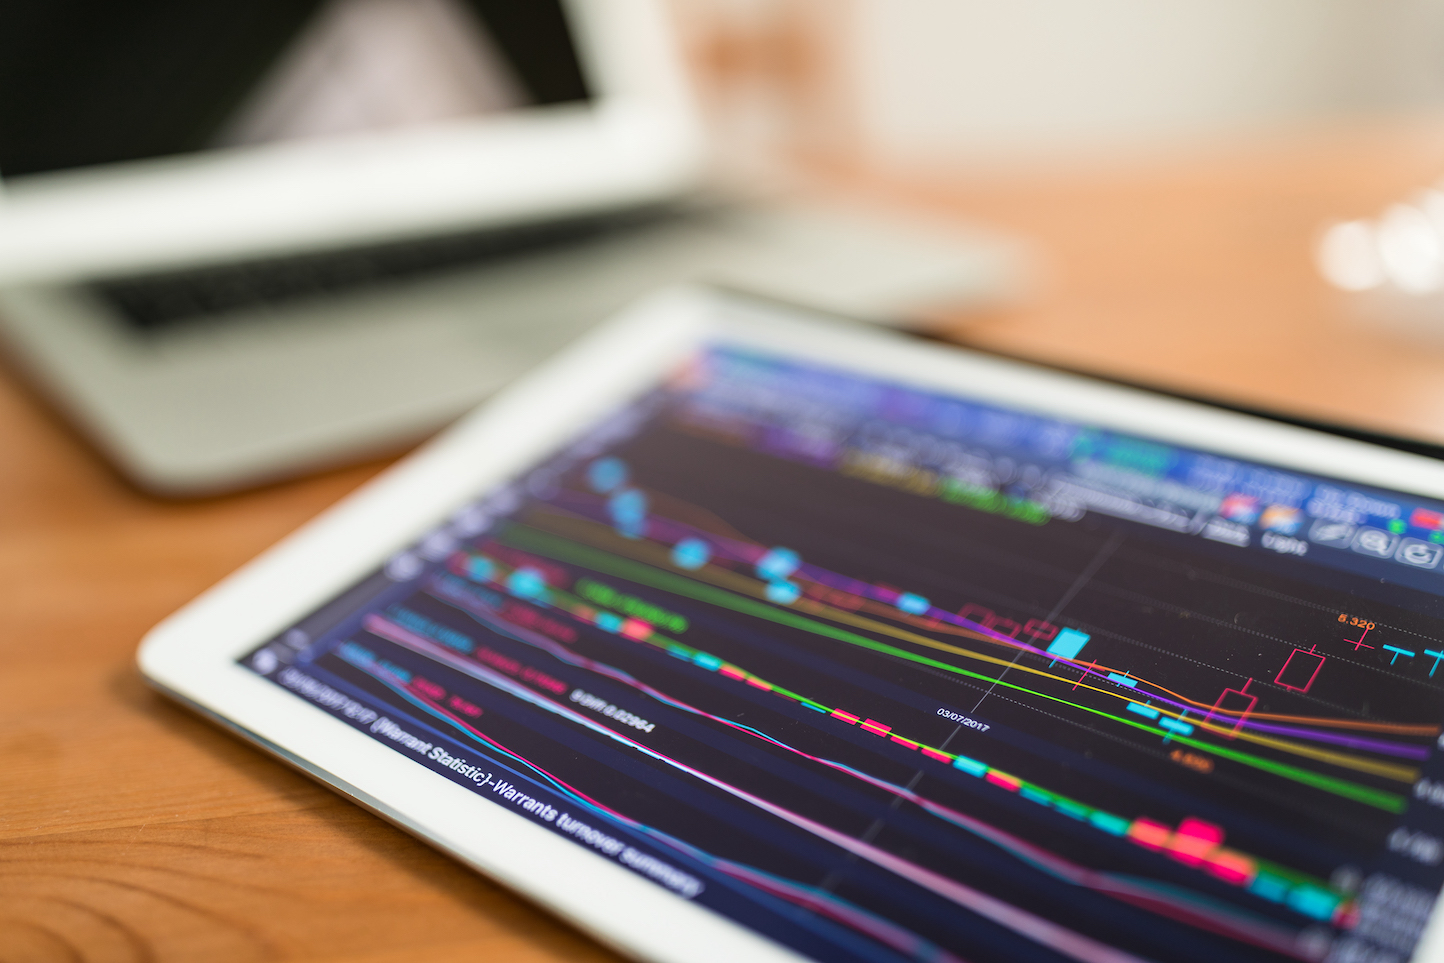 8 Best Tablets for Stock Trading: Buyer's Guide